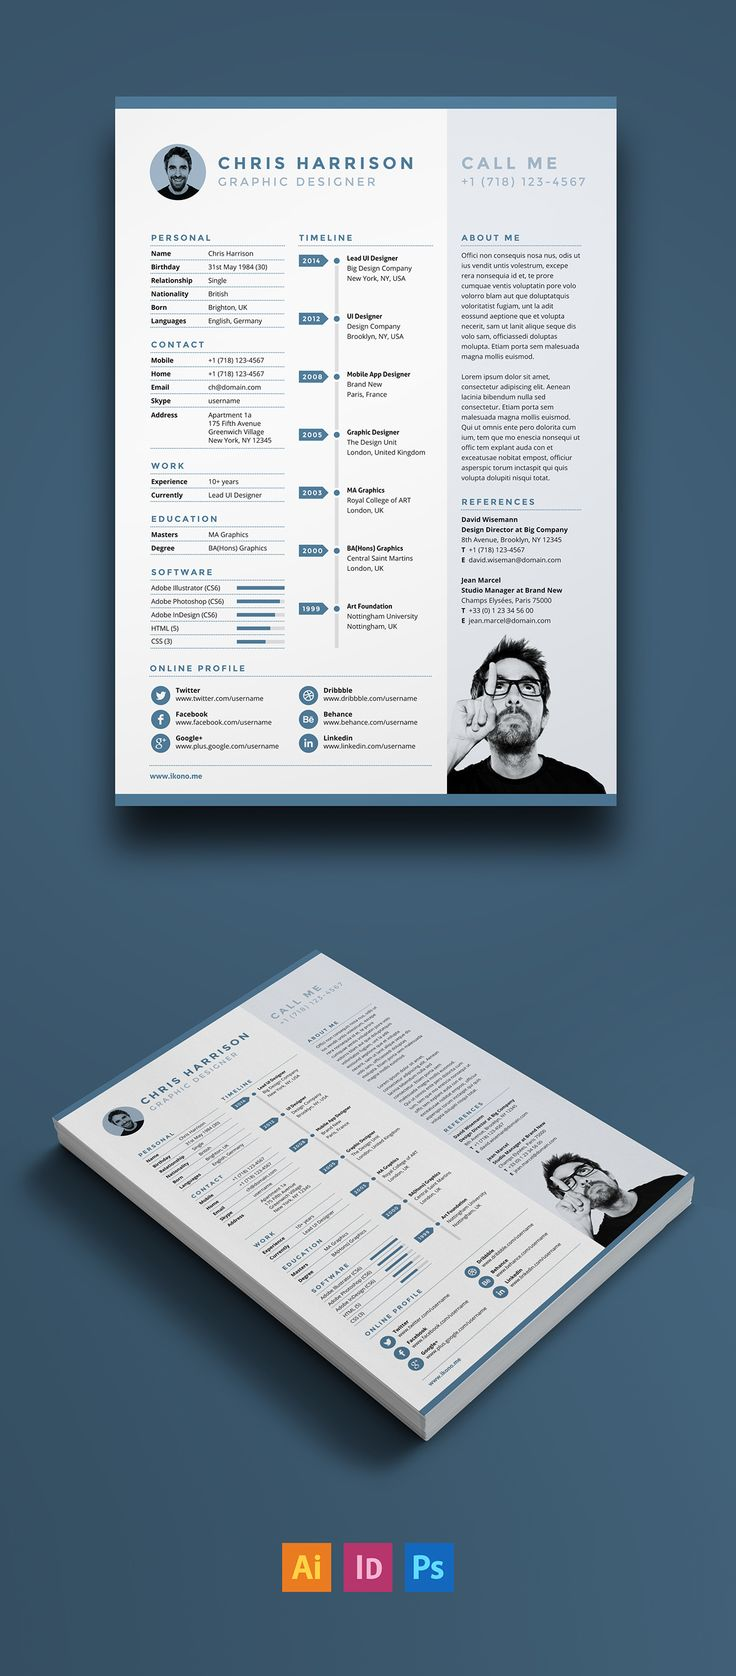 free creative resume templates that stand out%0A Free Resume Template on Behance